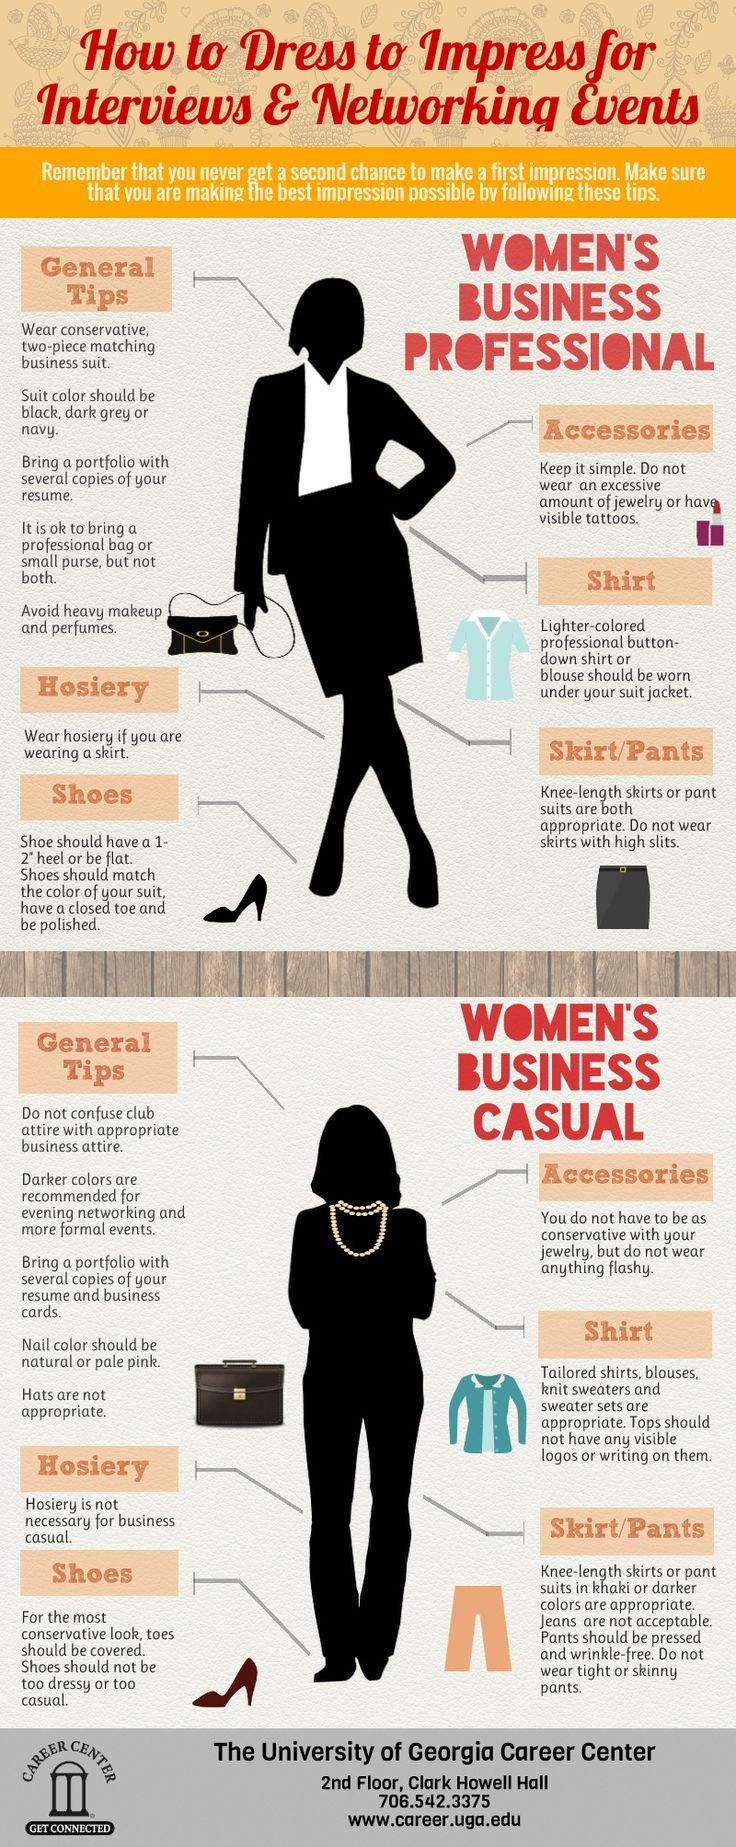 dress to impress business casual vs professional men and women professional attire vs business casual for women